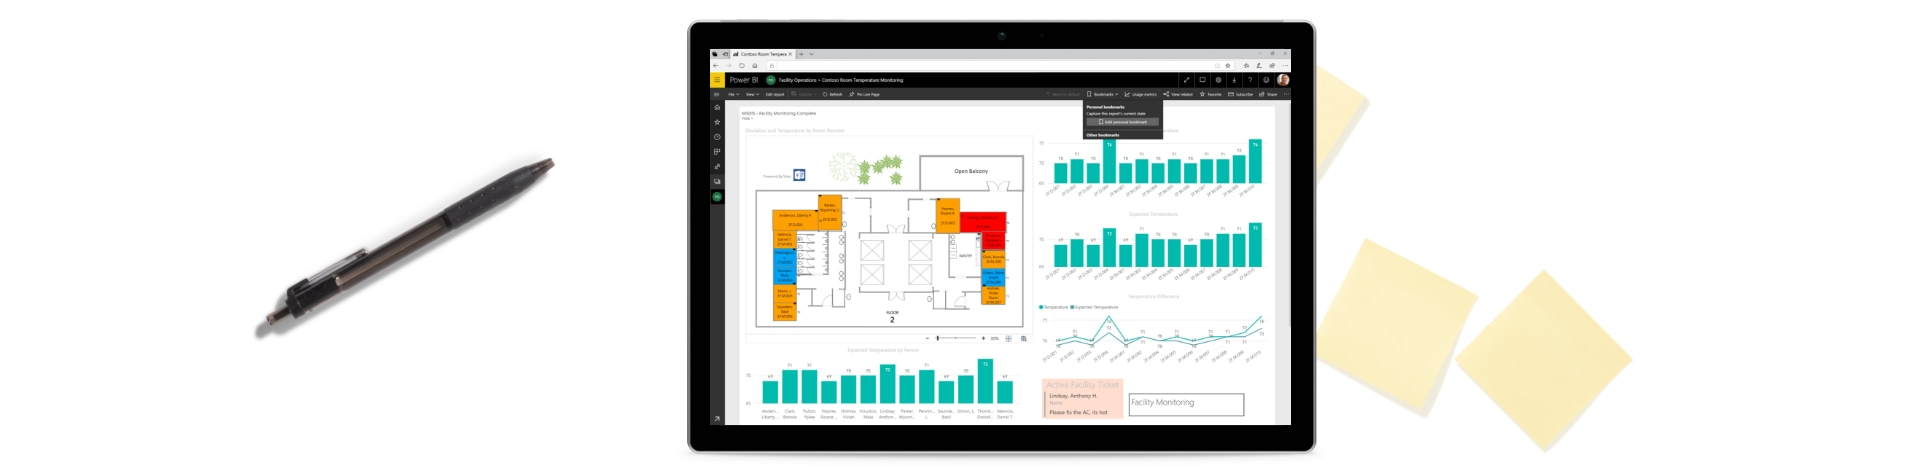 Sticky notes, a pen and a tablet device showing a Power BI dashboard.